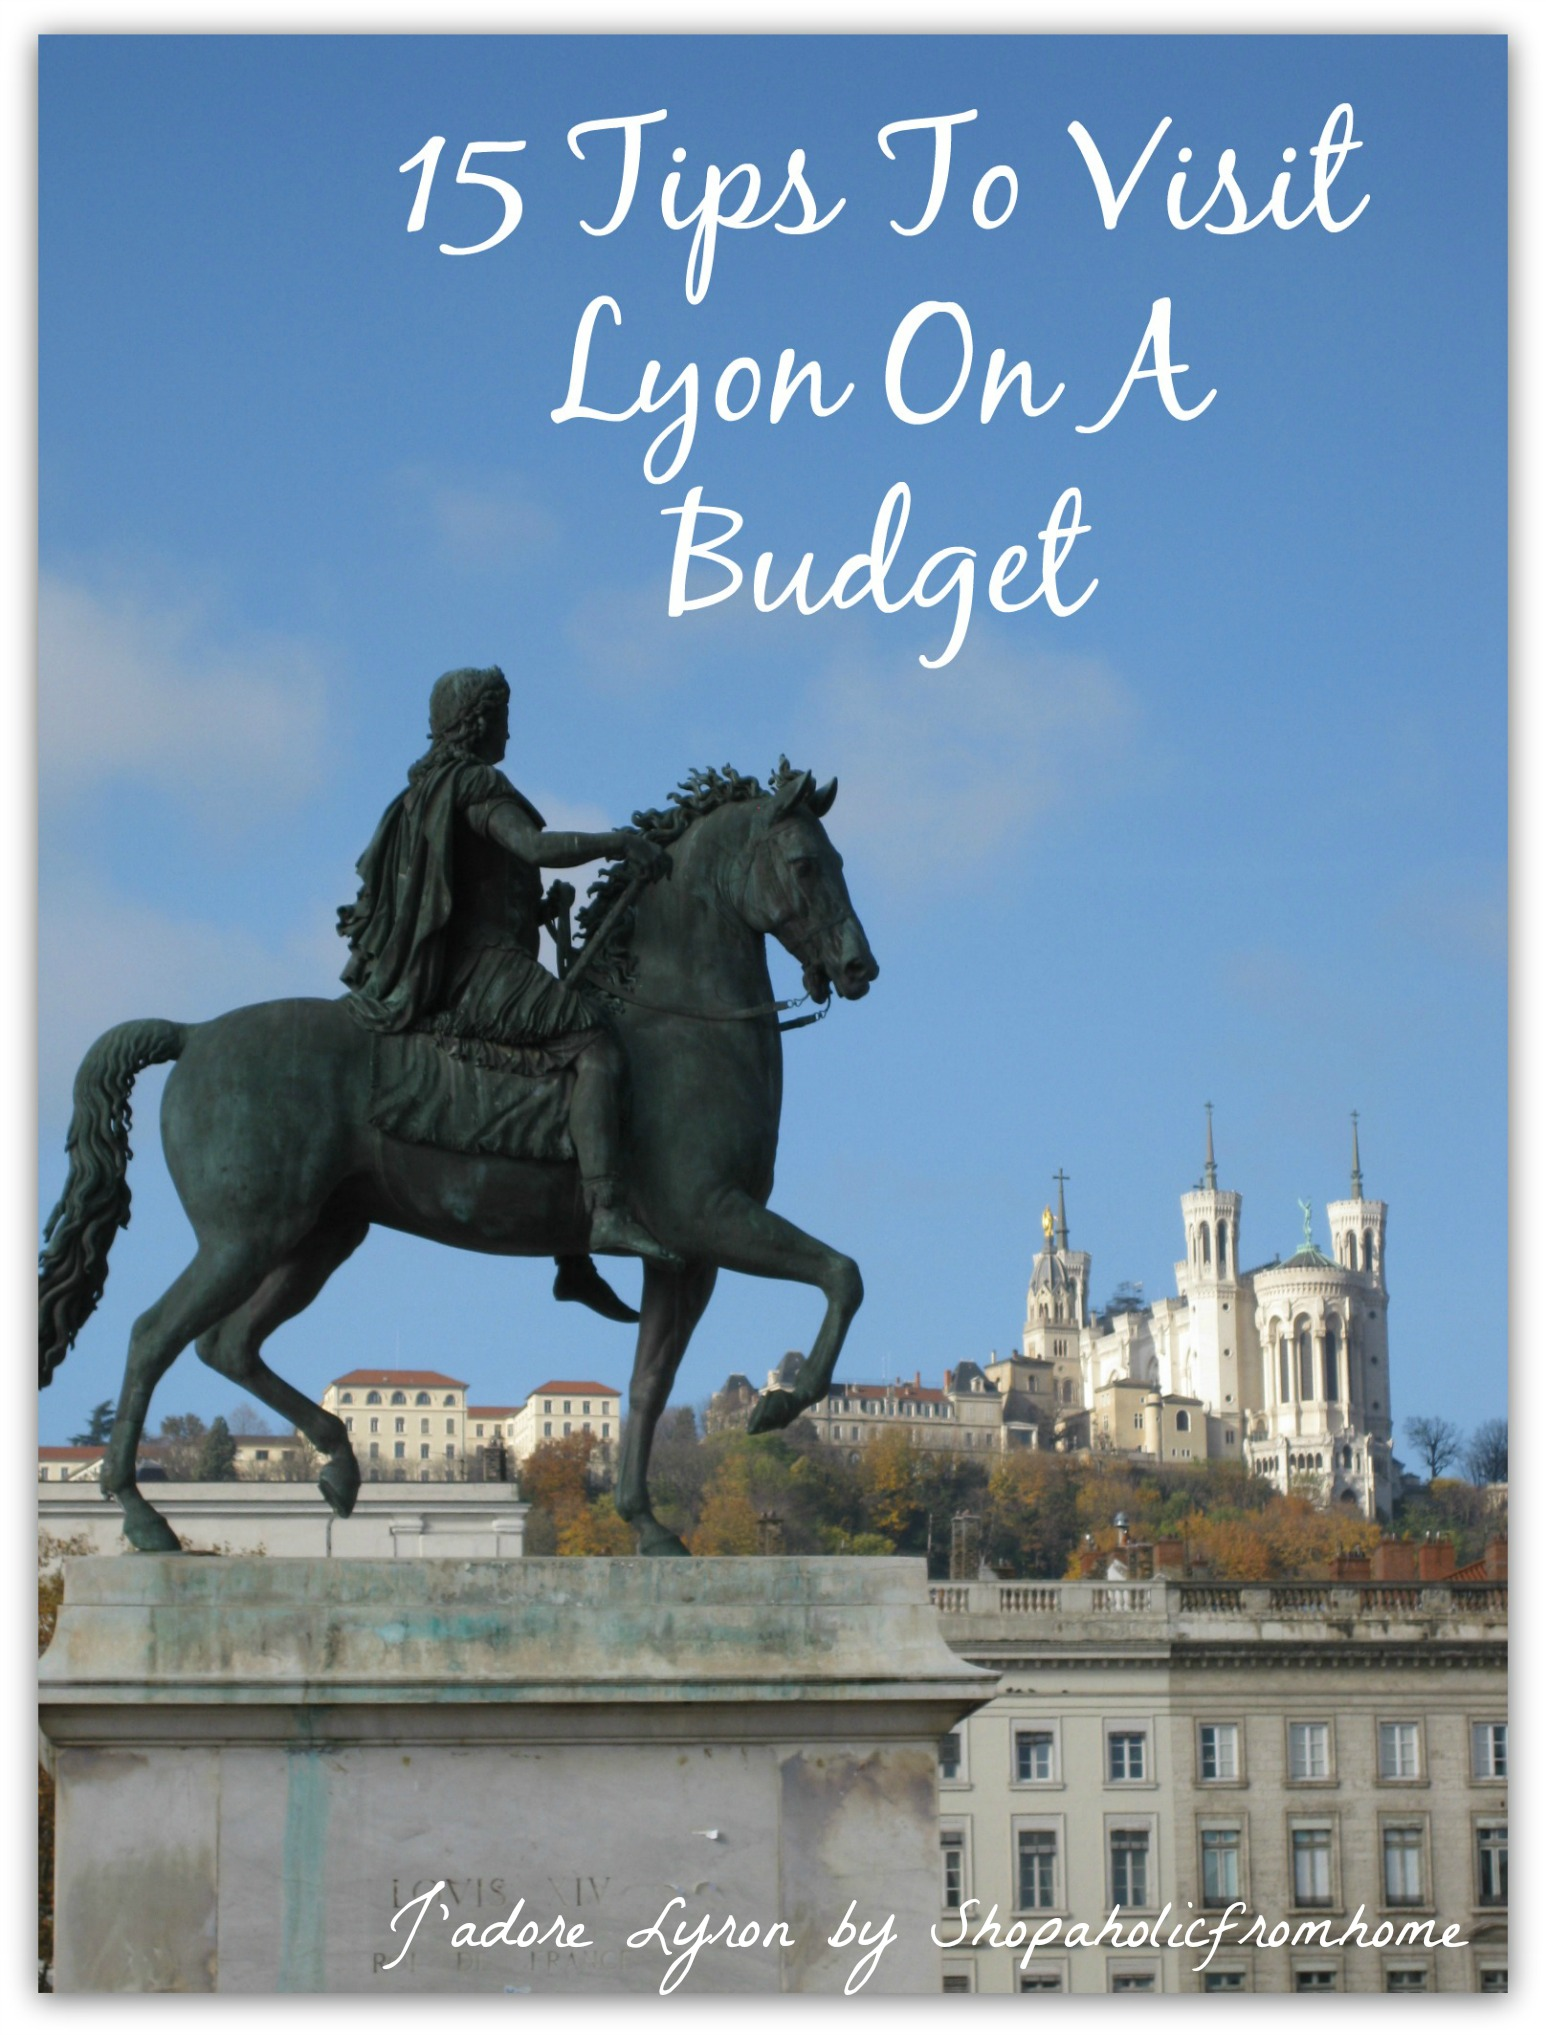 15 Tips To Visit Lyon